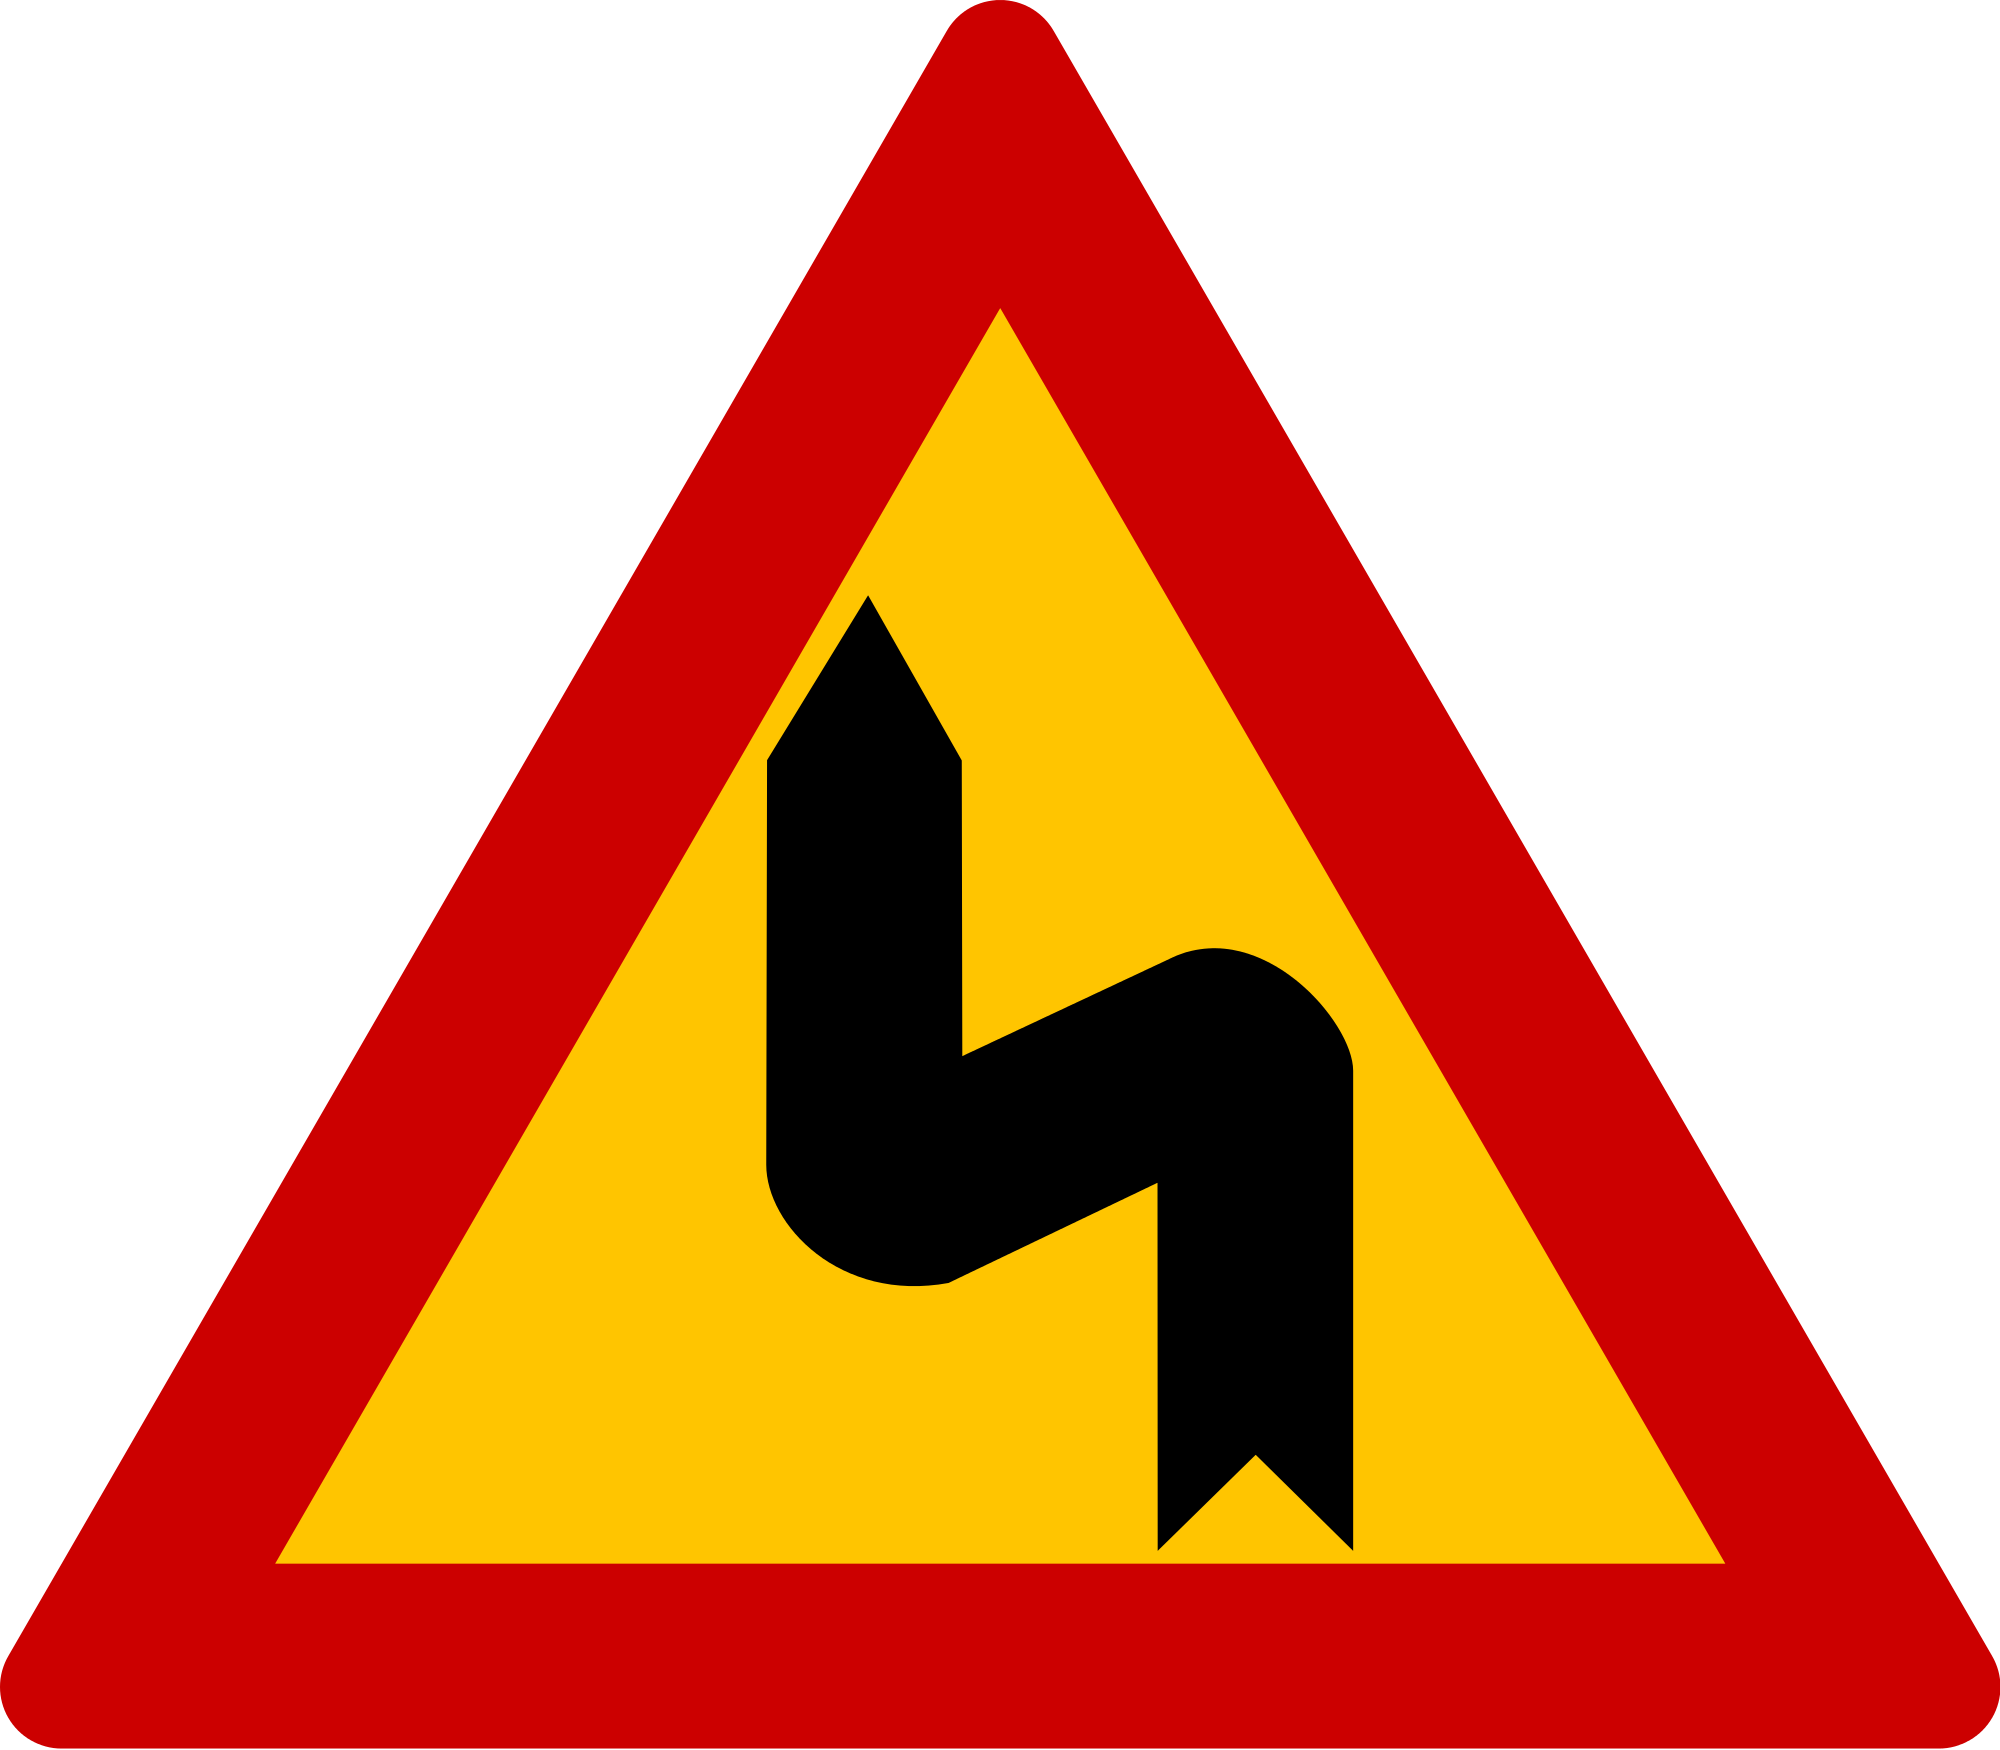 File:Traffic Sign GR.